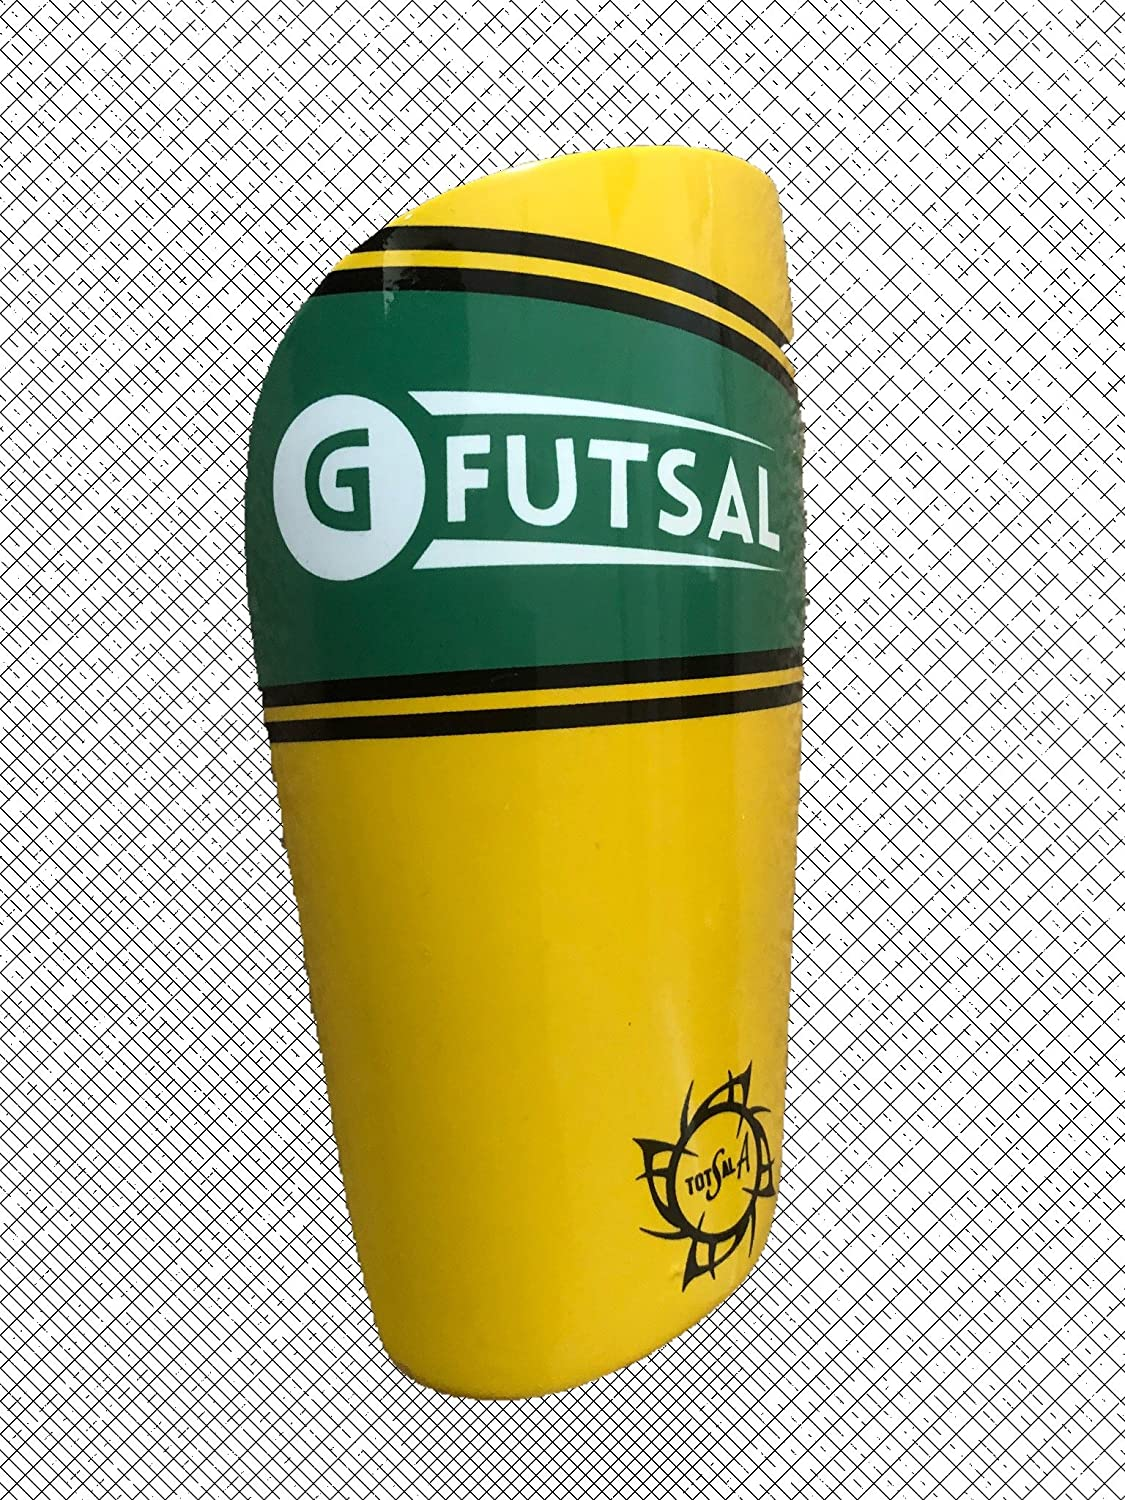 gfutsal totalsala Shin Guard B077G17BG9Large (age 11-15)